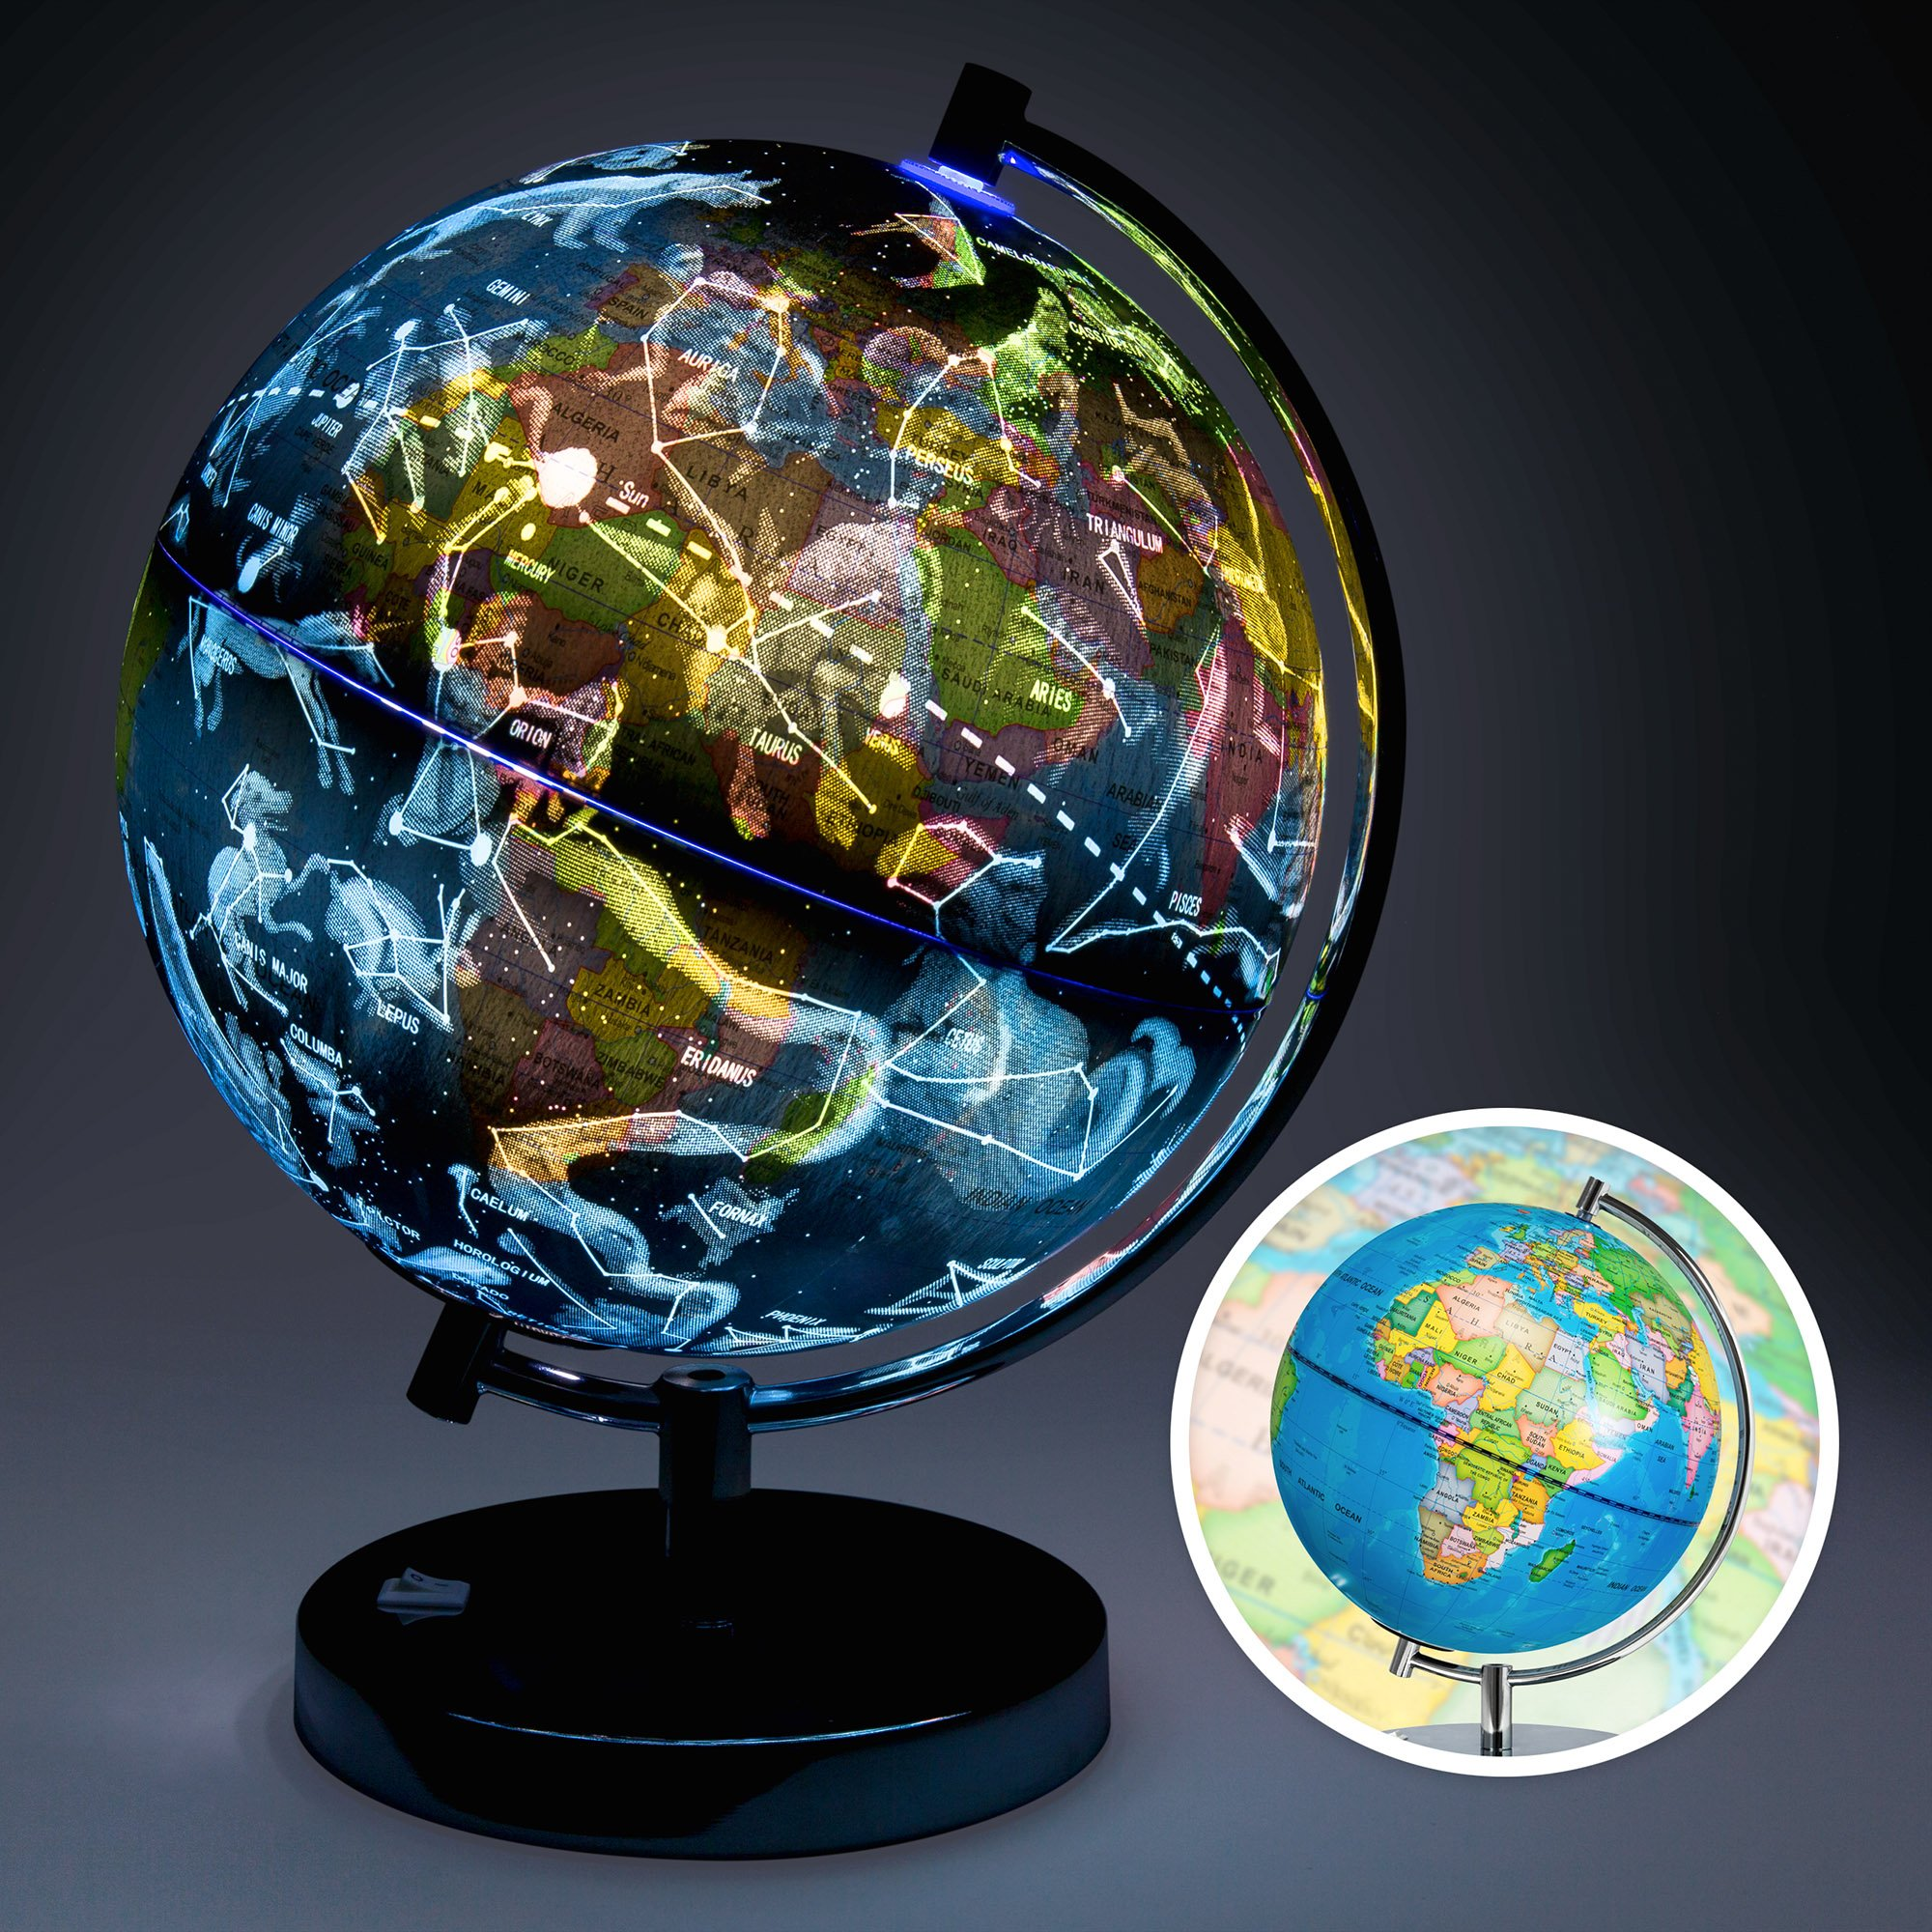 Best Choice Products 2-in-1 Kids Educational Day and Night World Globe w/ Light up Star Constellation Map, Steel Stand